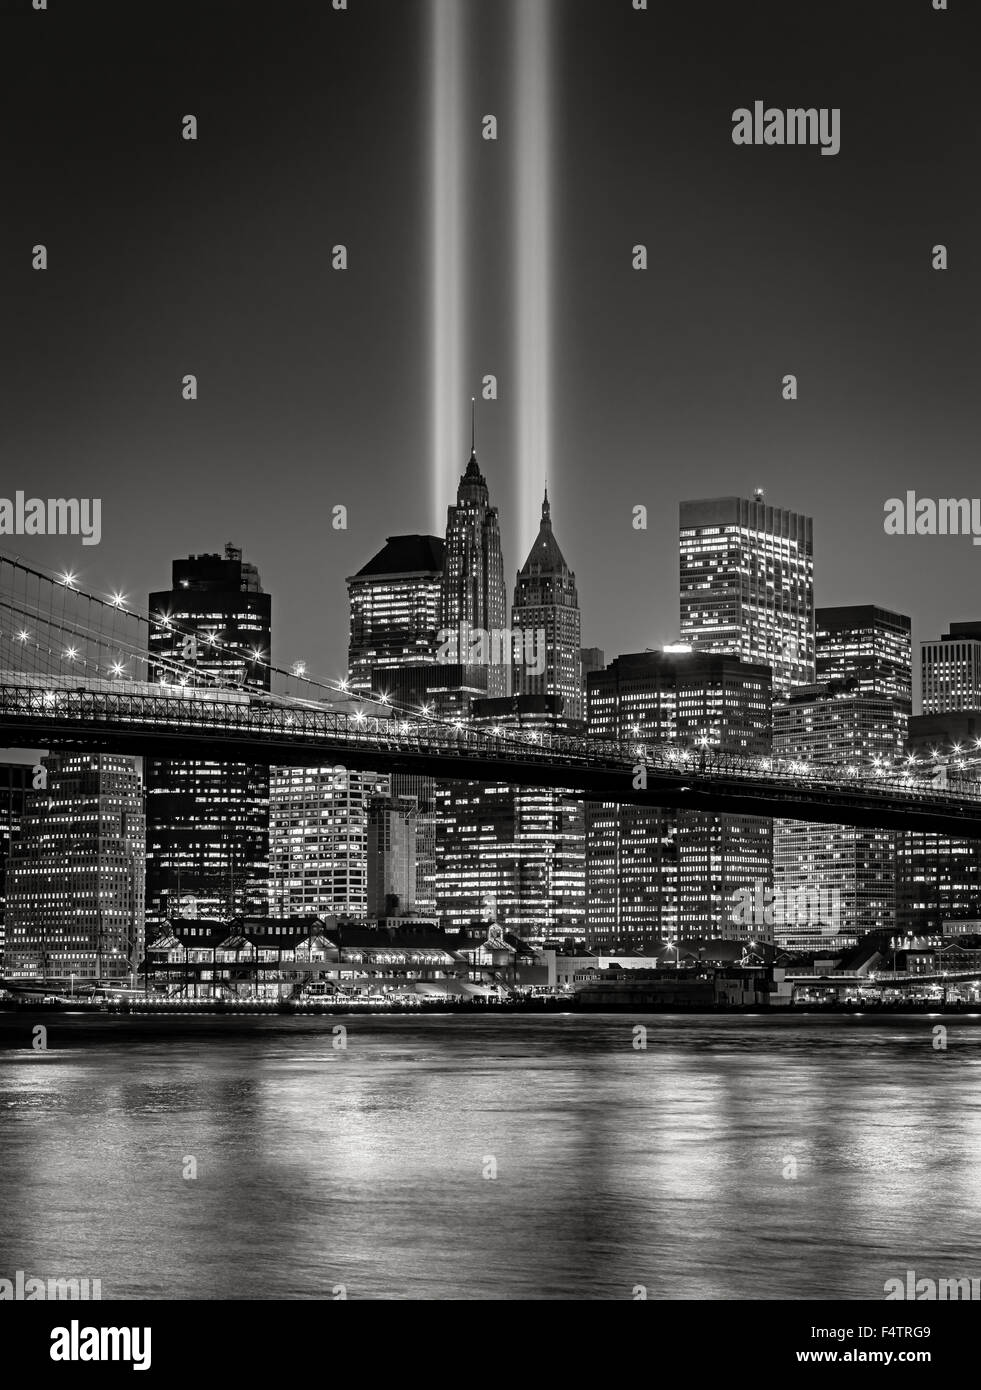 The Tribute in Light, in Lower Manhattan with illuminated skyscrapers of the Financial District, New York City, - Stock Image